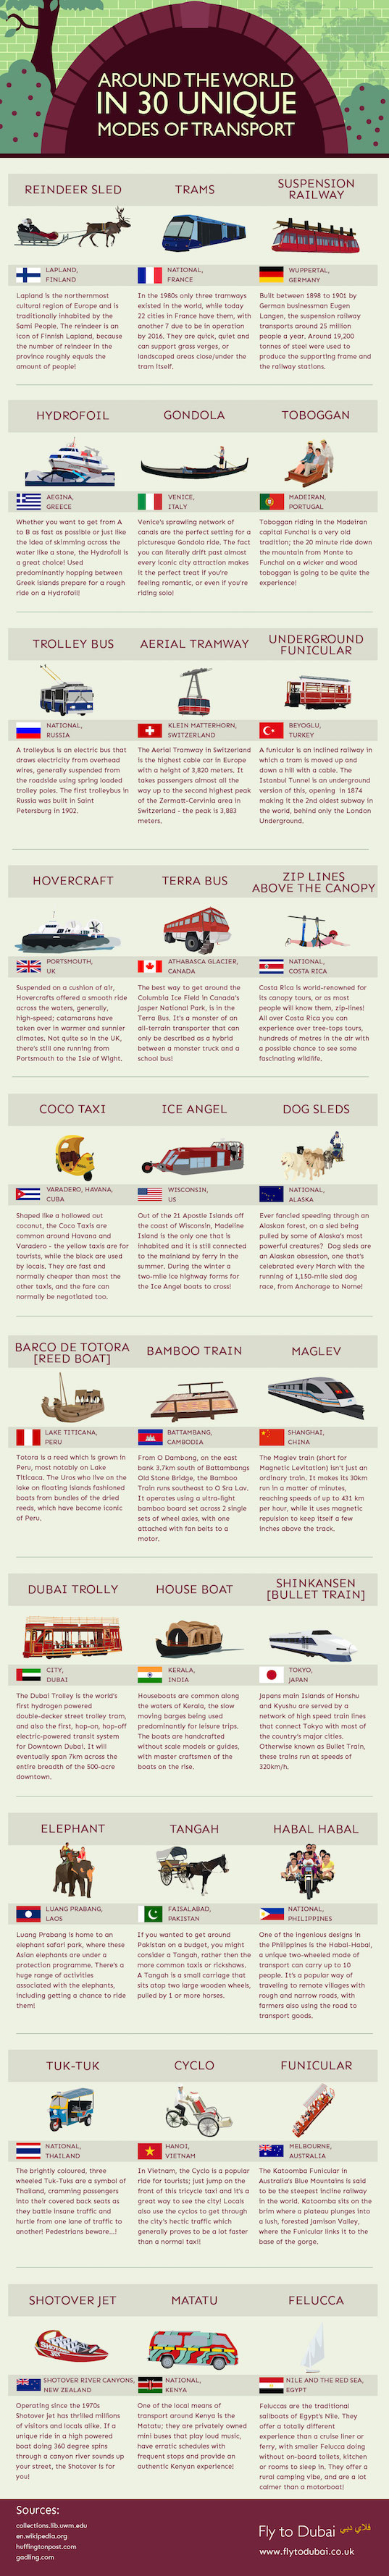 Fly to Dubai, infographic, bicycles, reindeer sled, modes of transport, transportation, reader submitted content